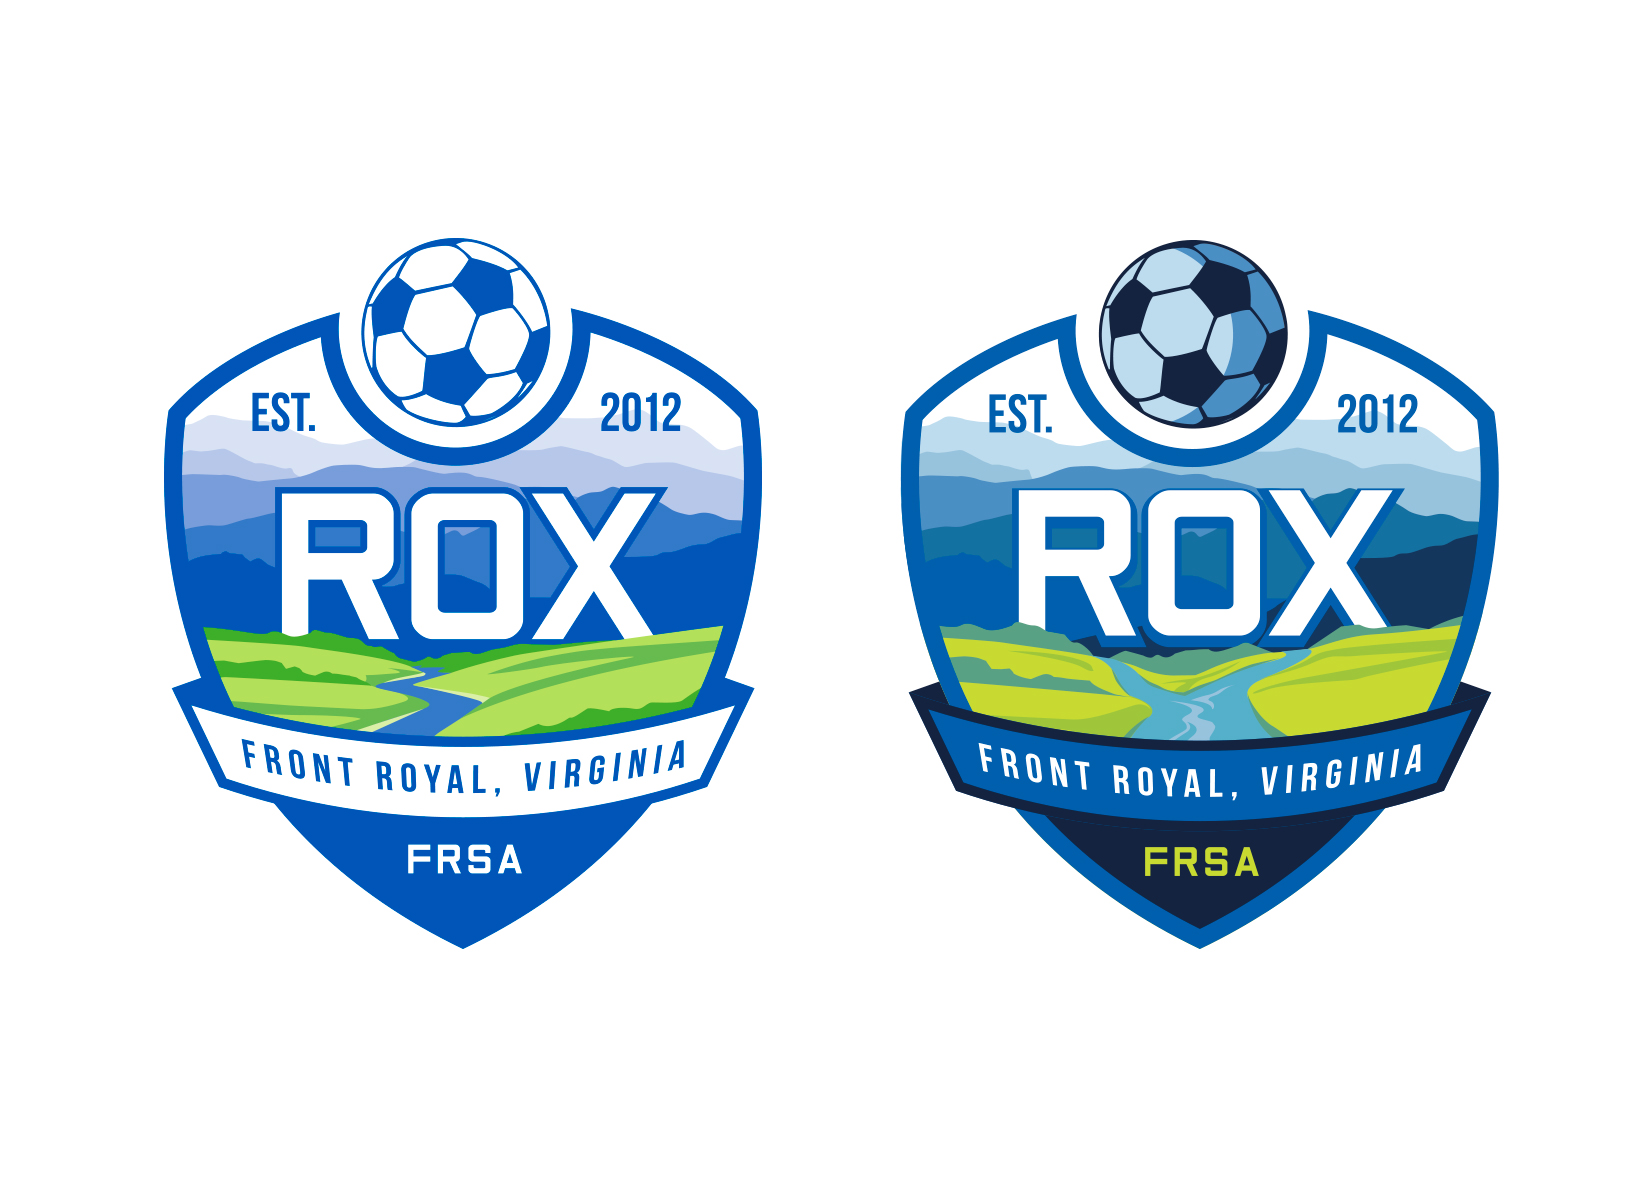 custom-soccer-logo-design-by-jordan-fretz-for-rox-travel-soccer-3.jpg